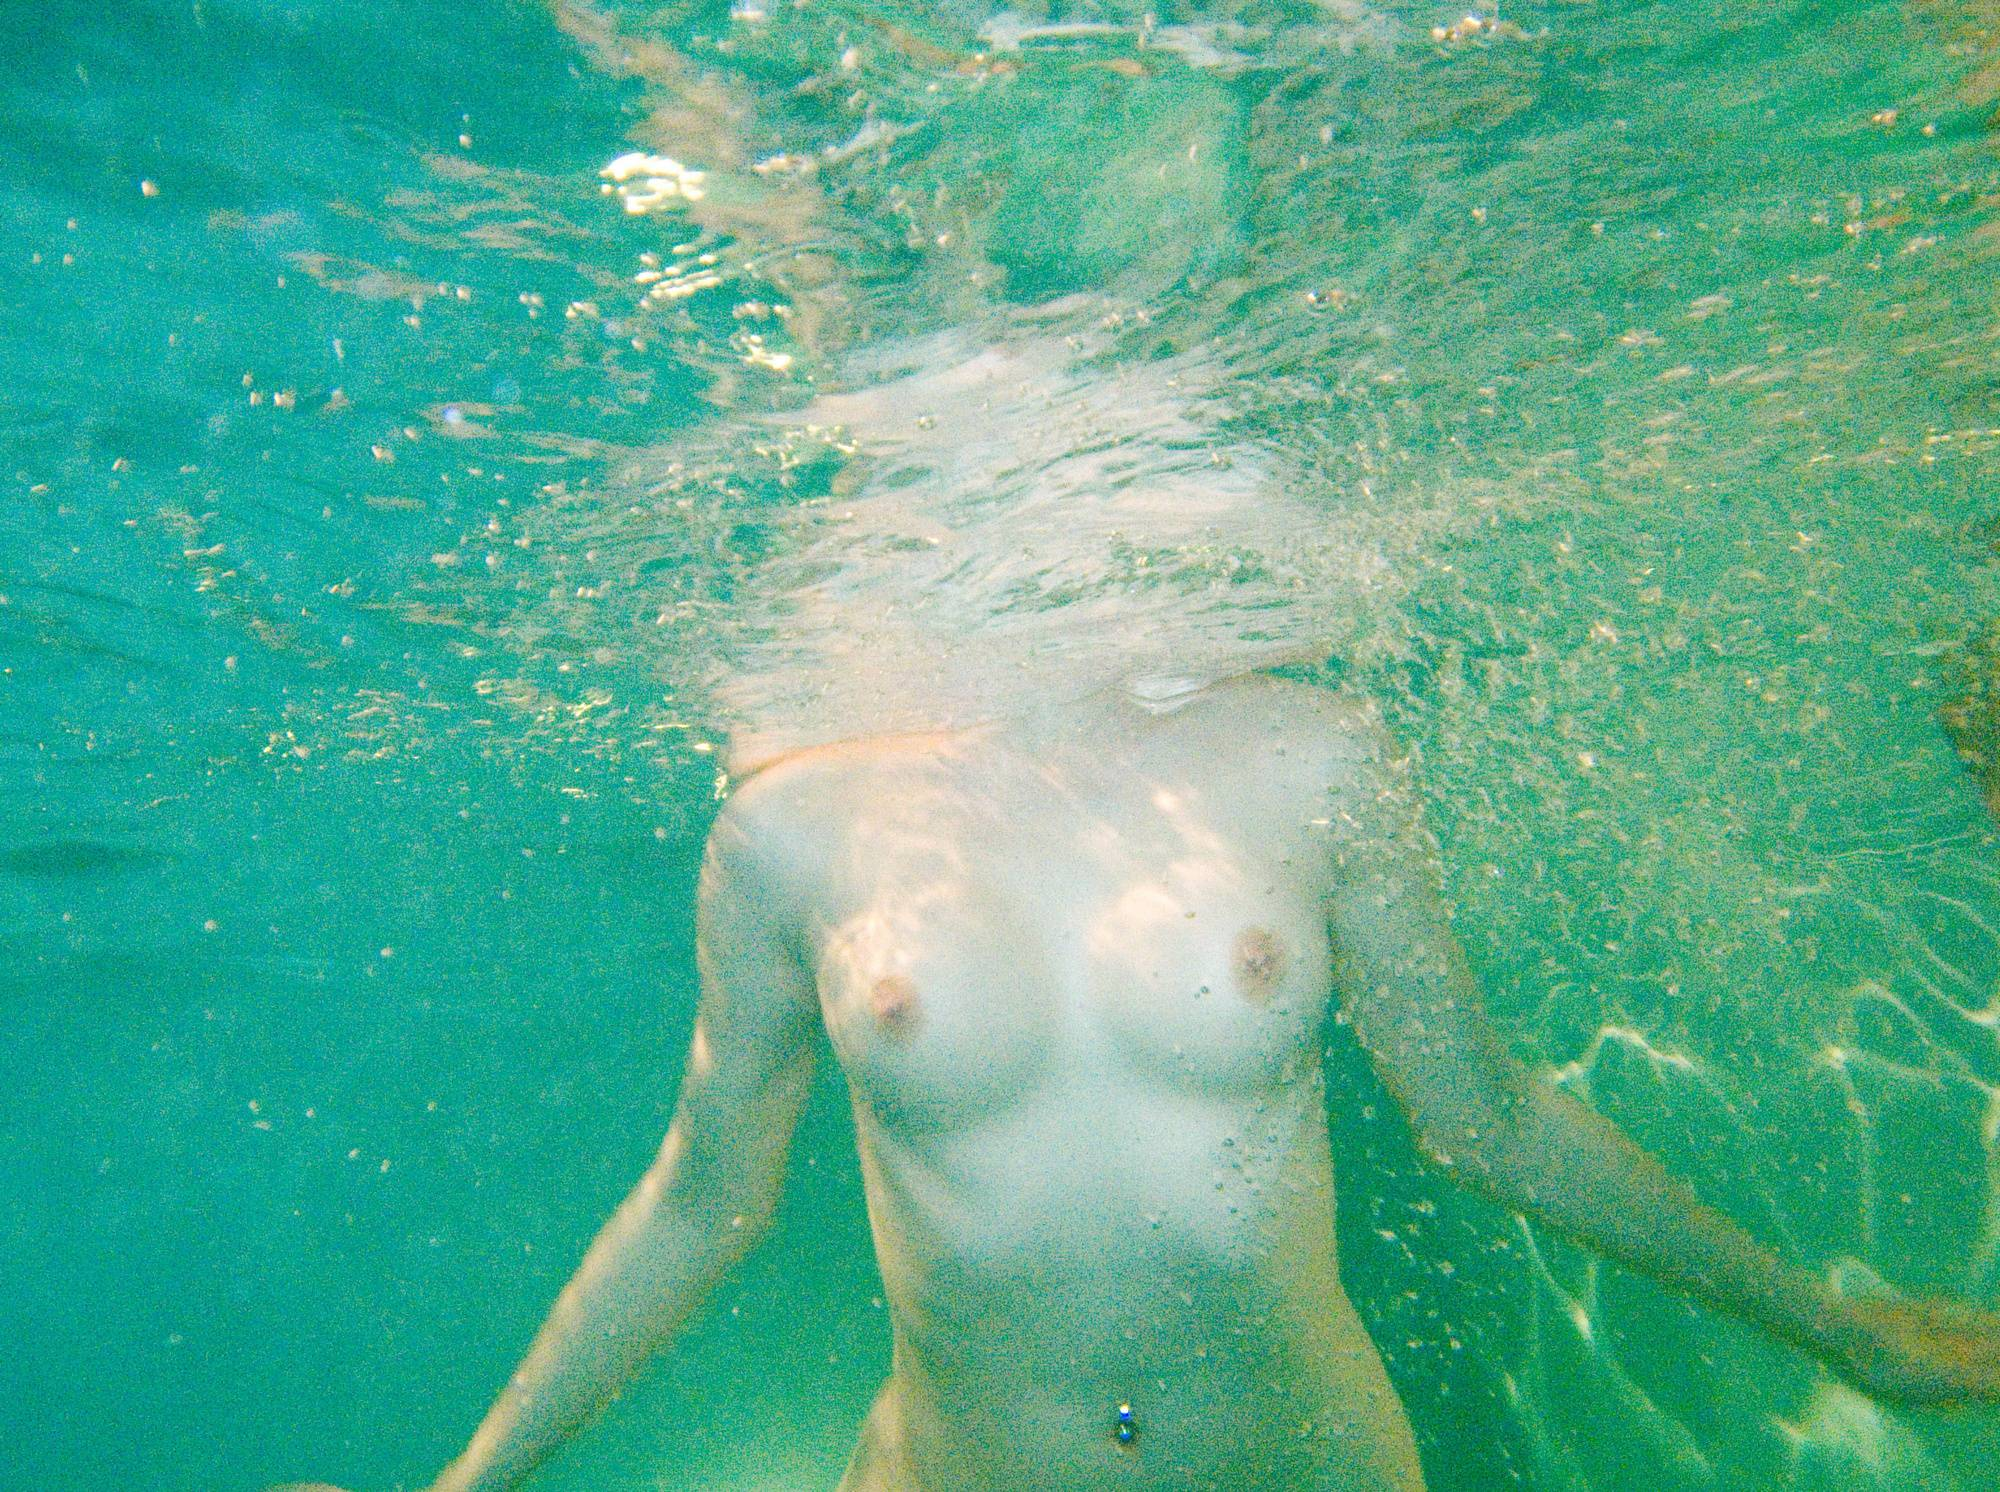 Pure Nudism Images Soft Spa Underwater Girls - 1